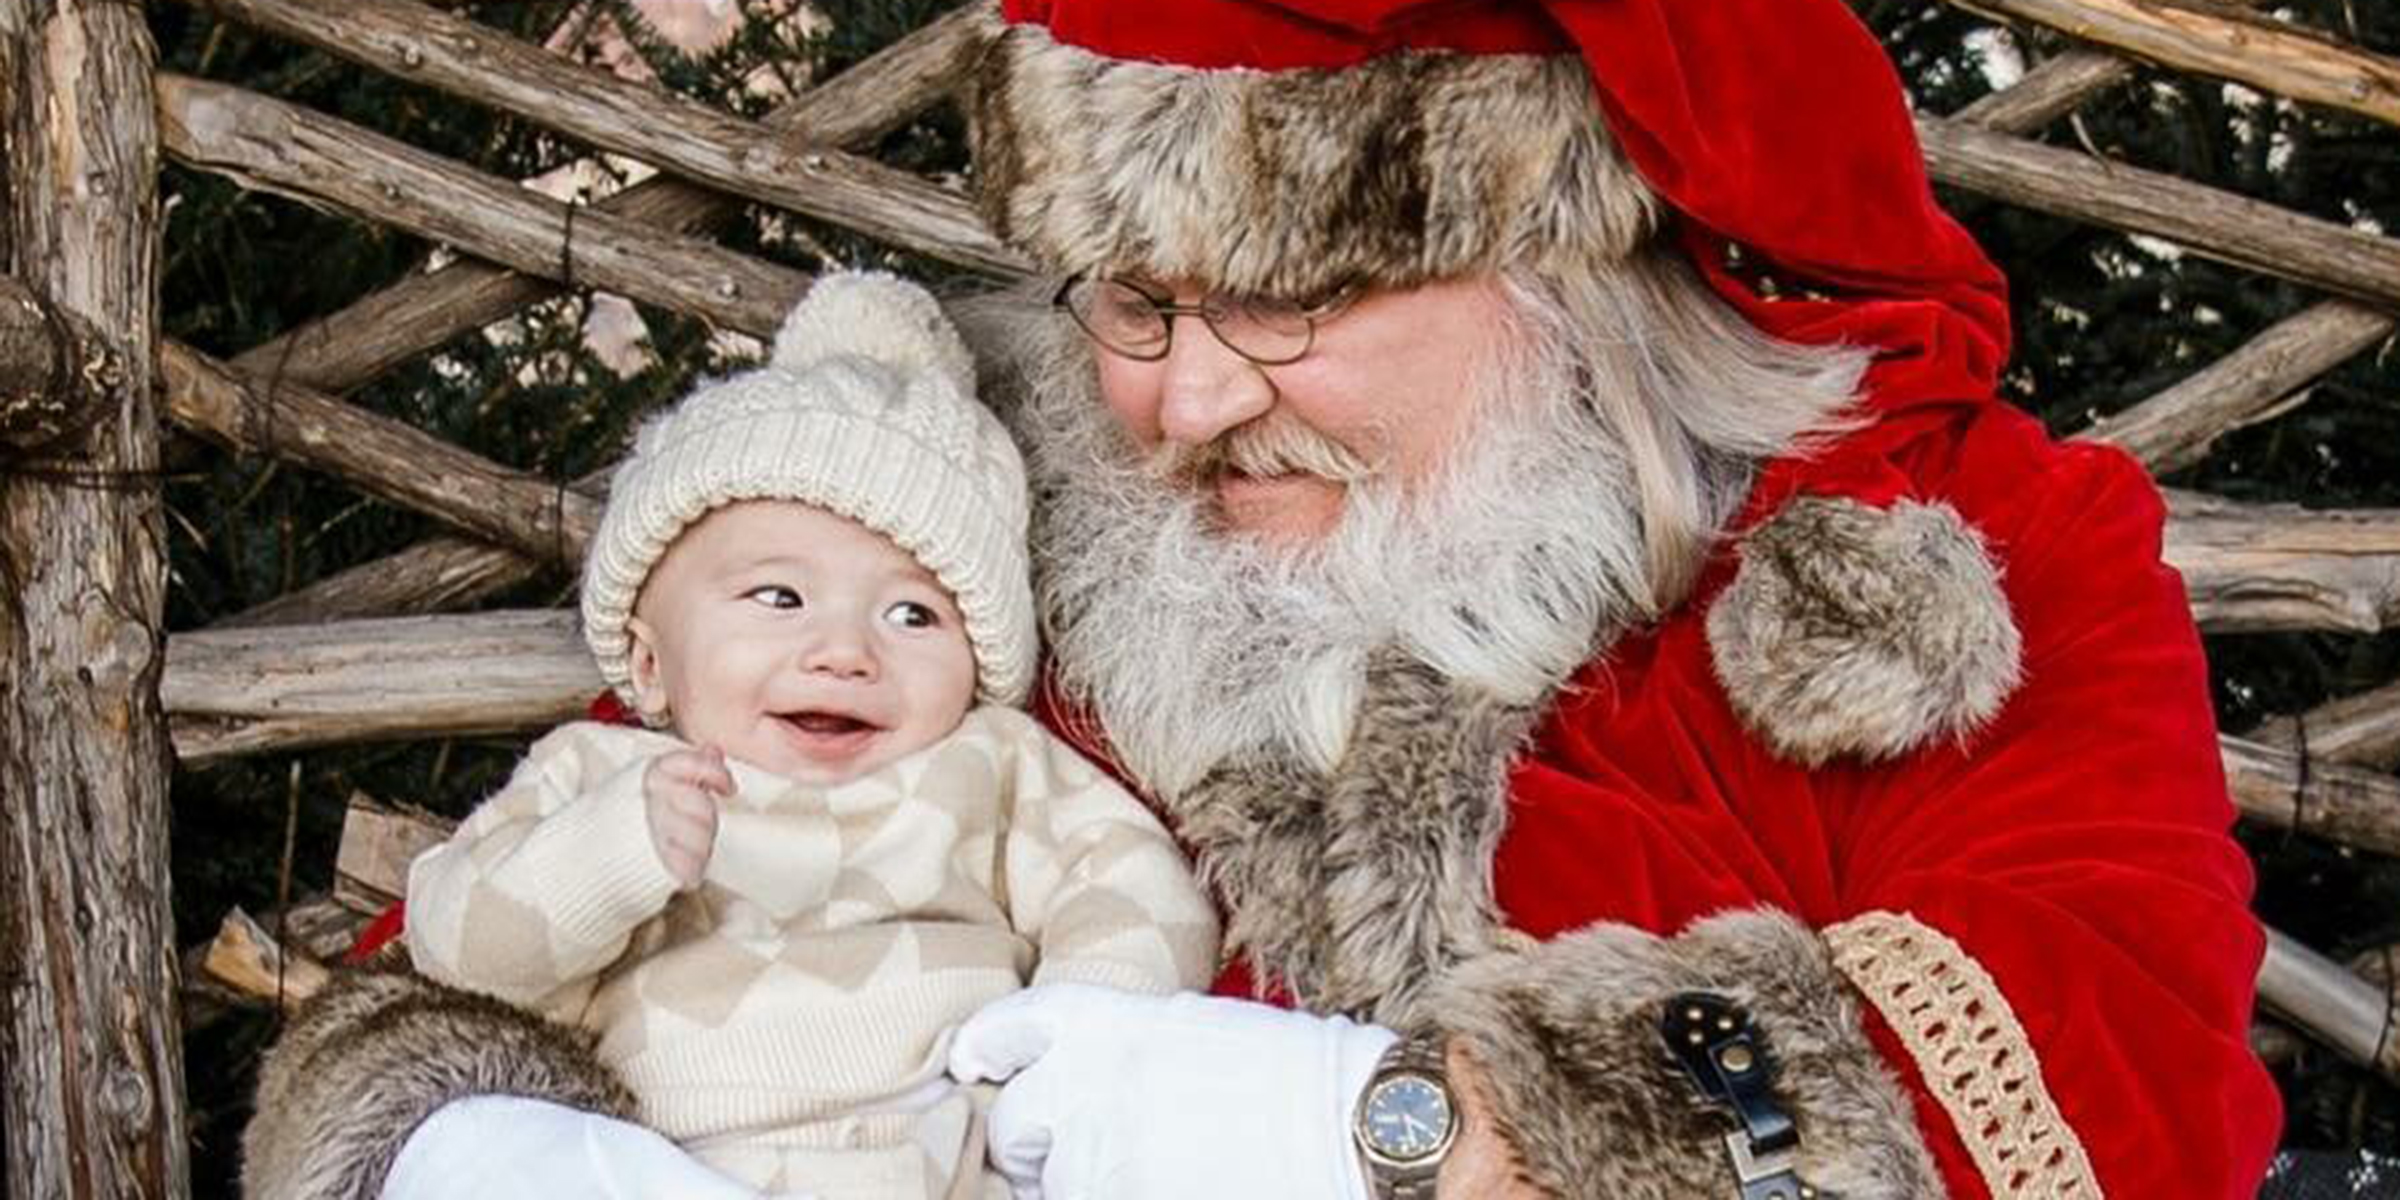 Joanna Gaines shares photos of baby Crew meeting Santa for 1st Christmas cca84e47bf2a